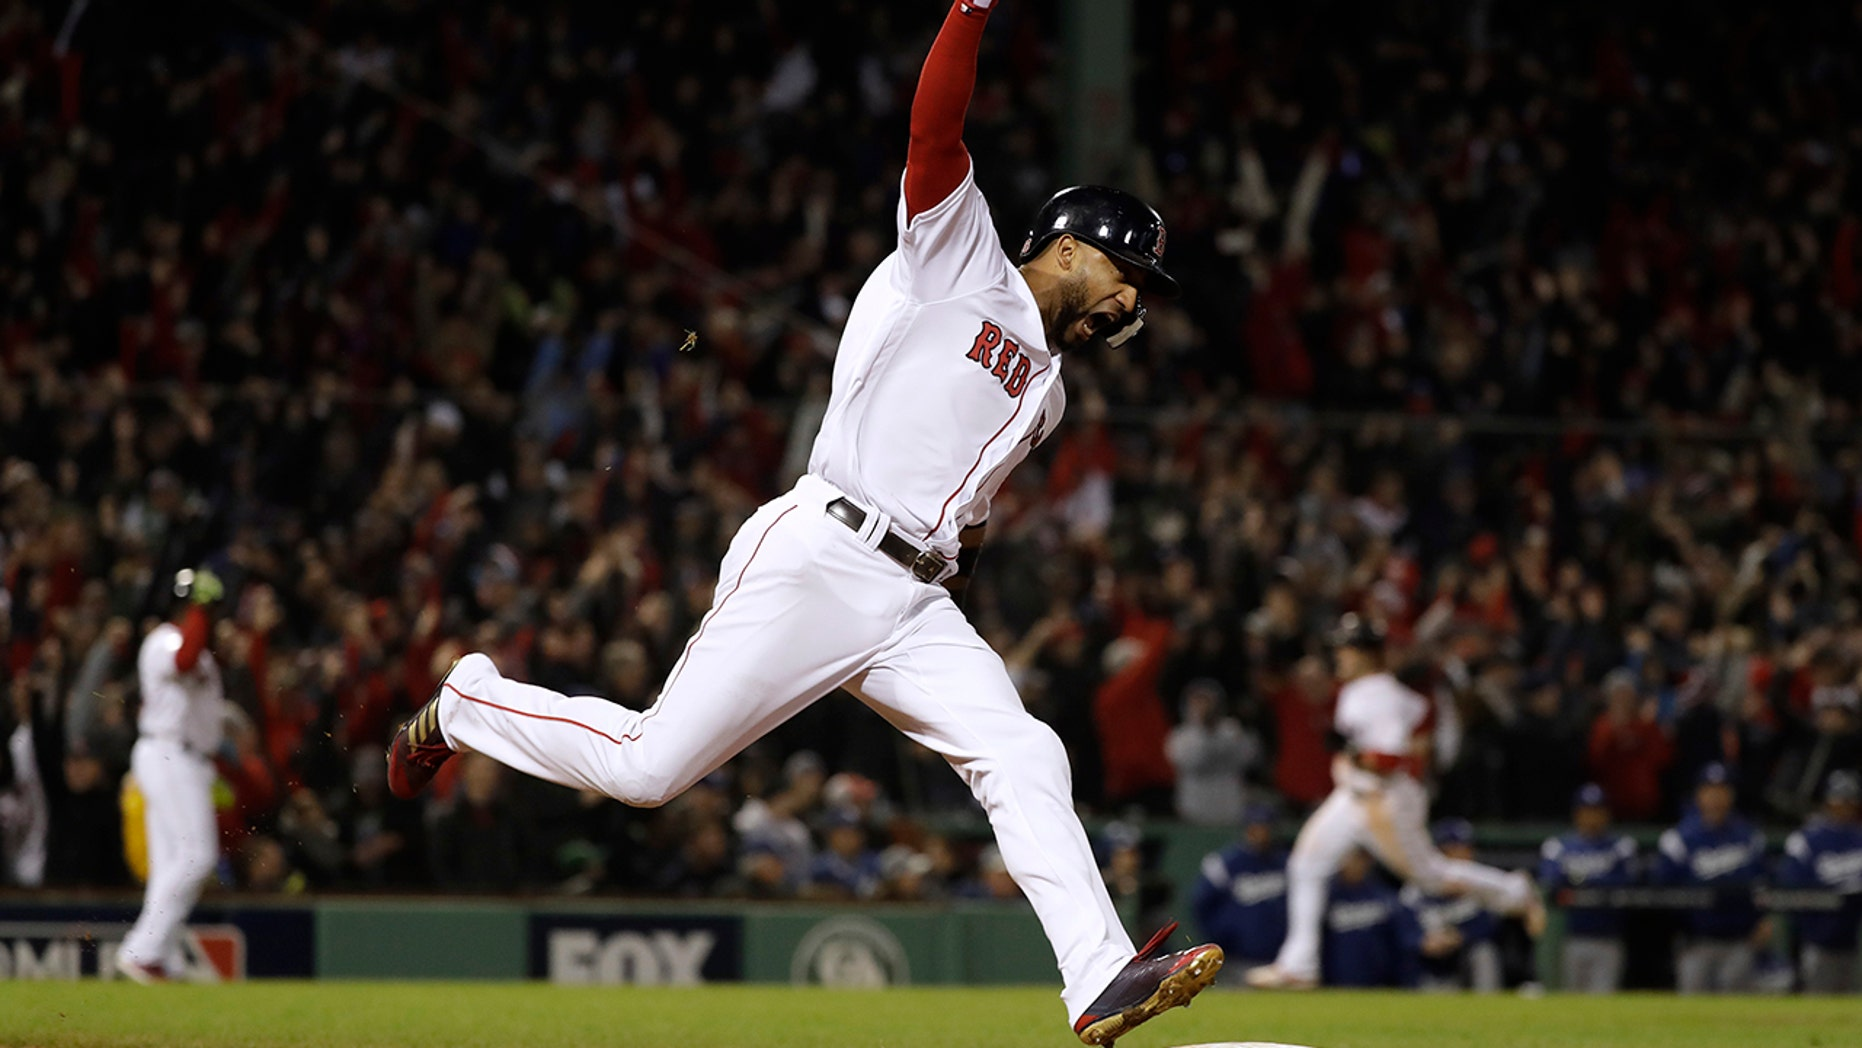 Boston Red Sox's Eduardo Nunez reacts as he runs the bases after hitting a three-run home run during the seventh inning of Game 1 of the World Series baseball game against the Los Angeles Dodgers on Tuesday.